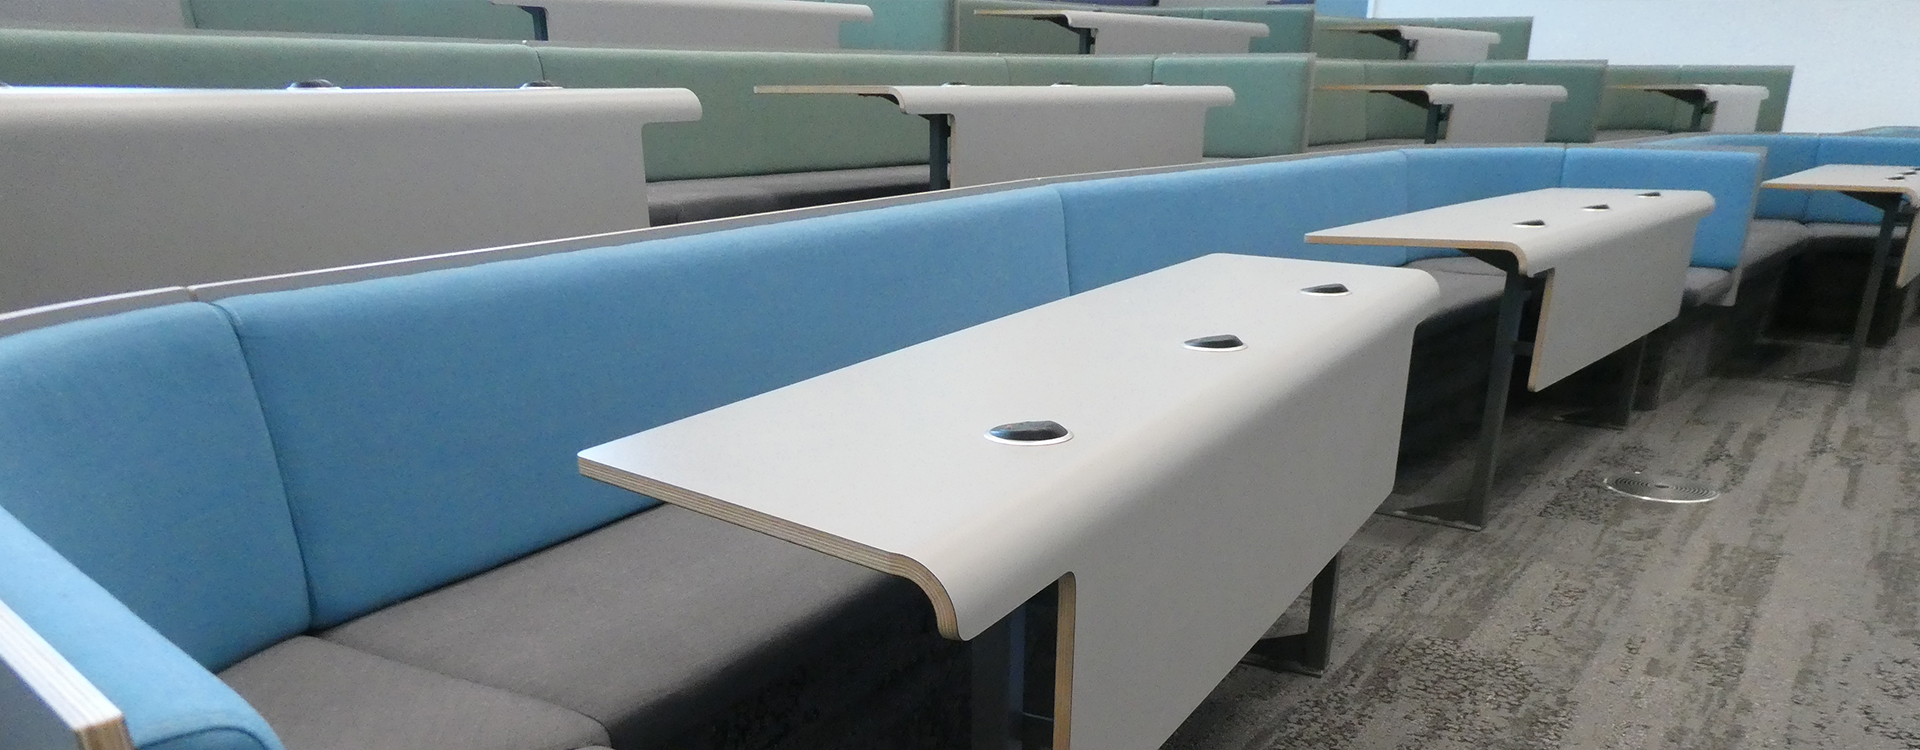 Newcastle University Collaborative Bench Seating